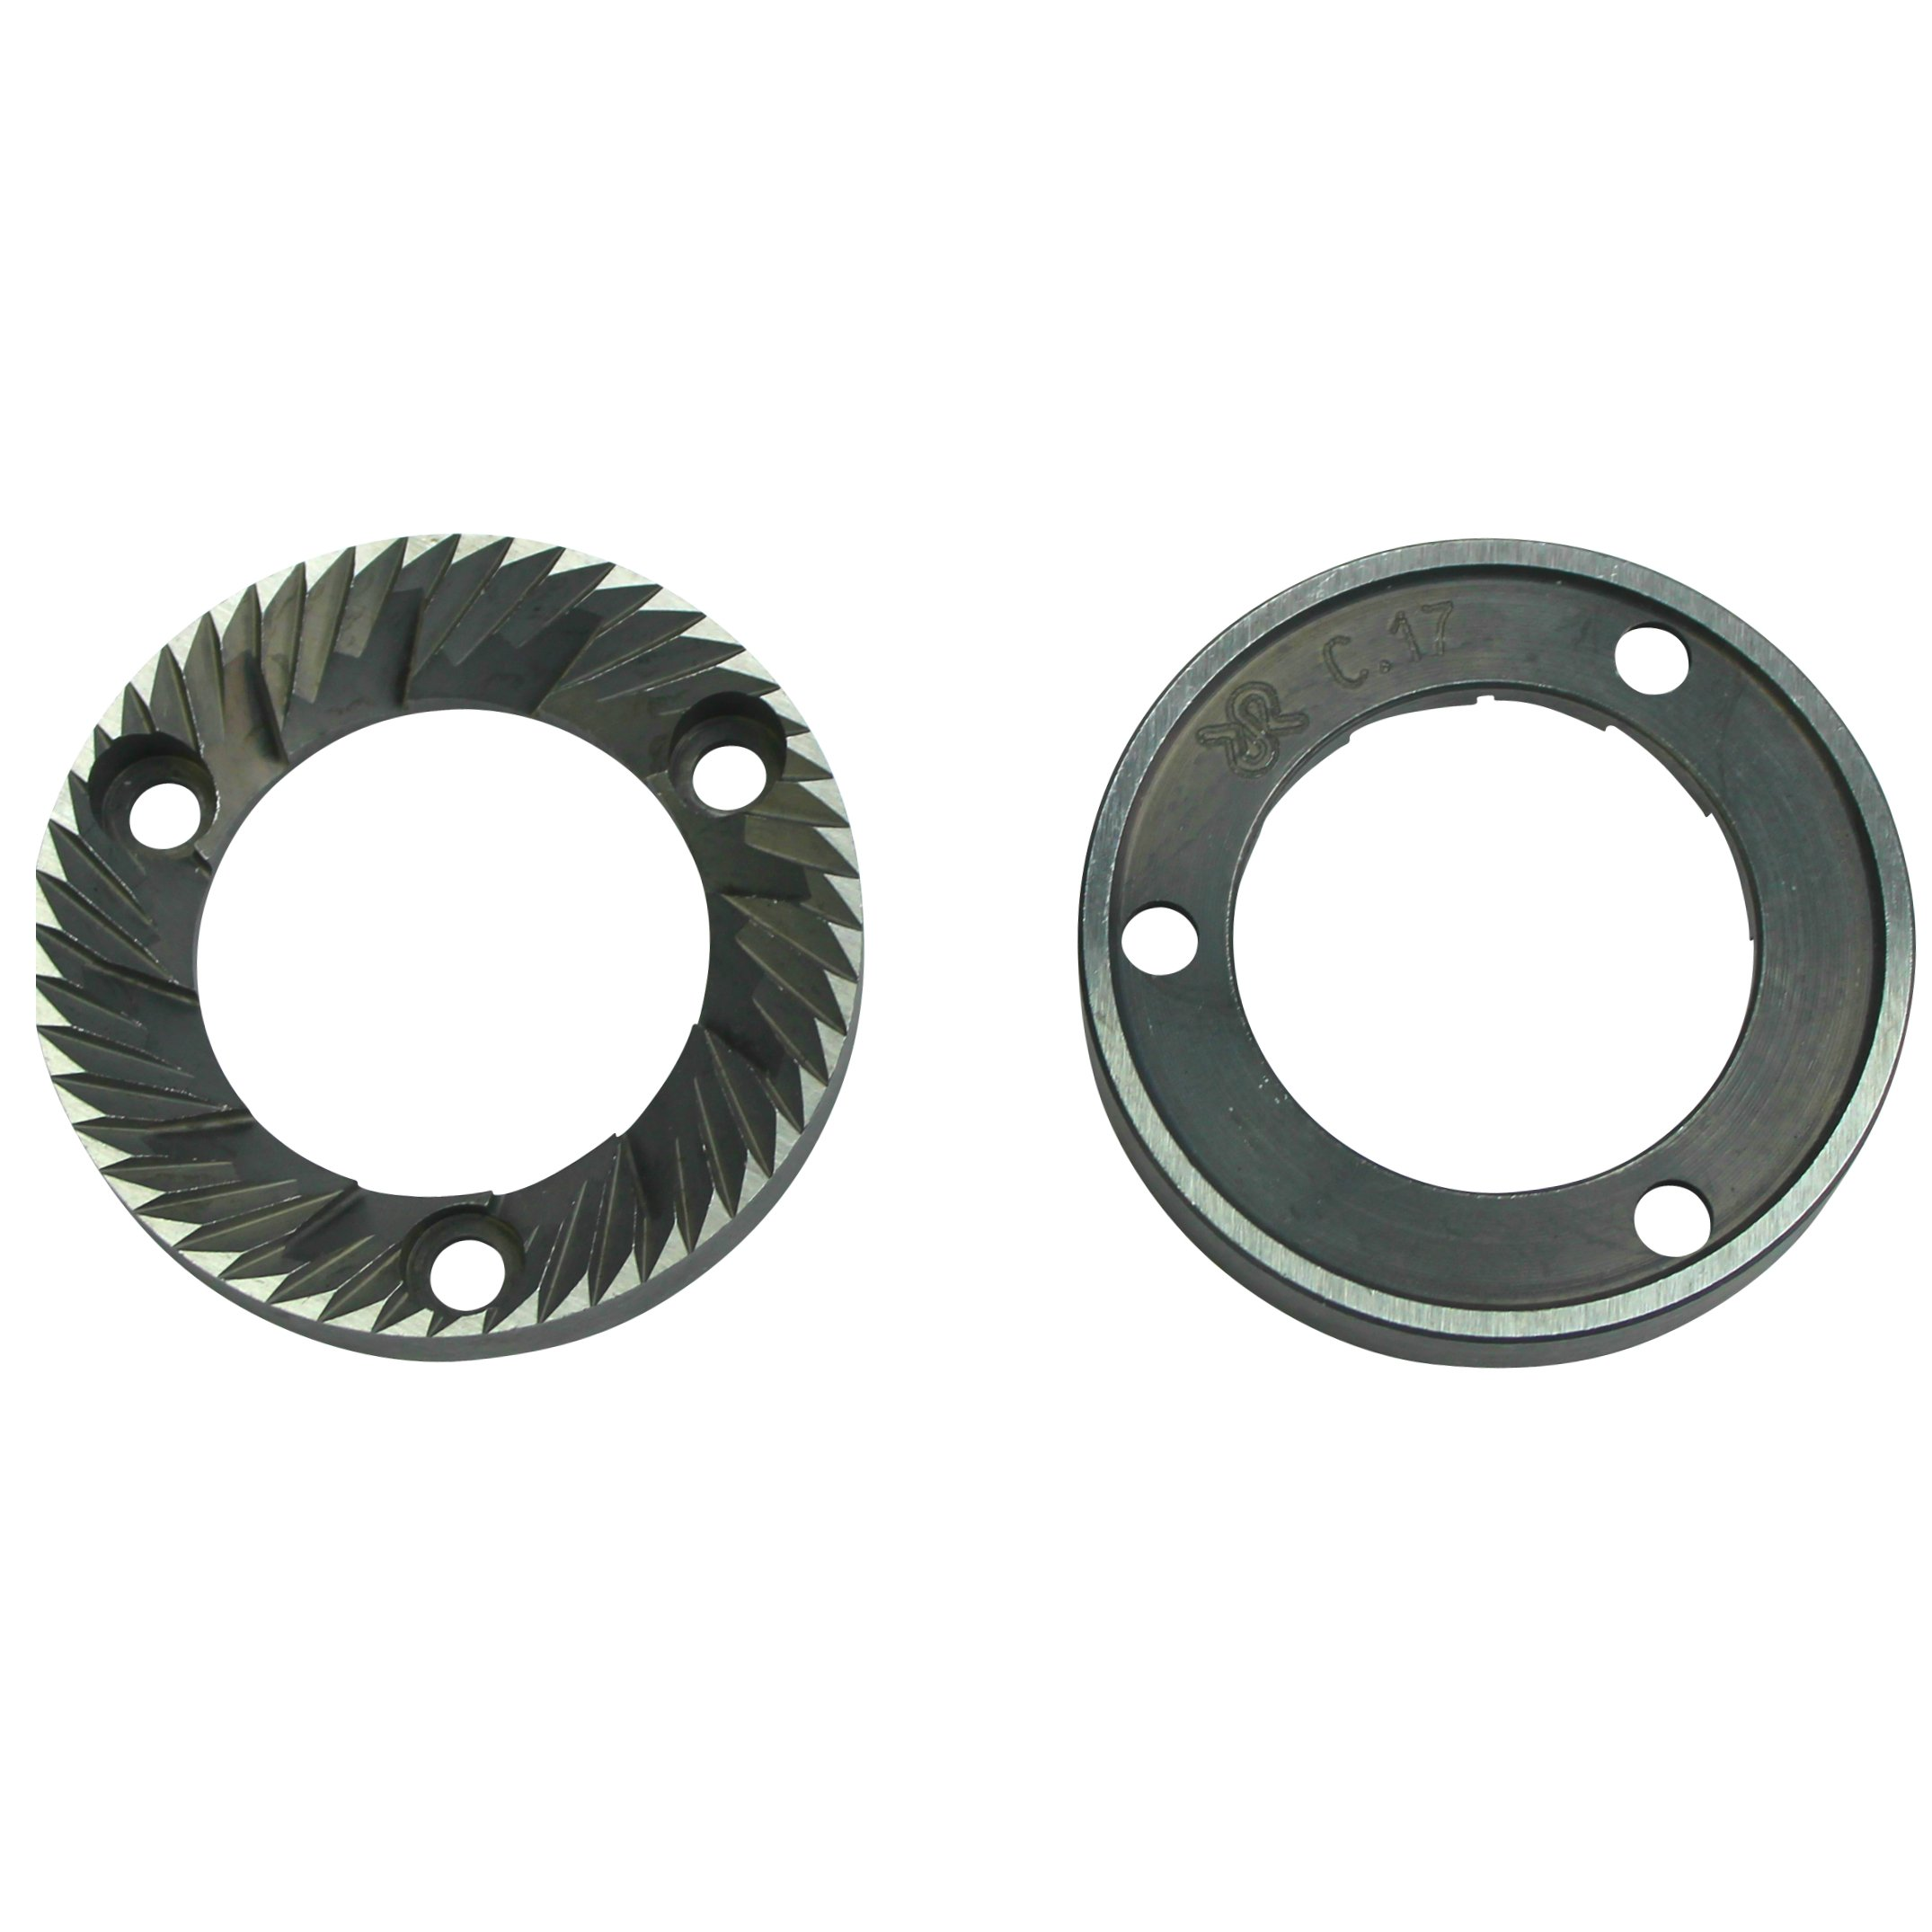 Rancilio Rocky Burr Replacement Grinders